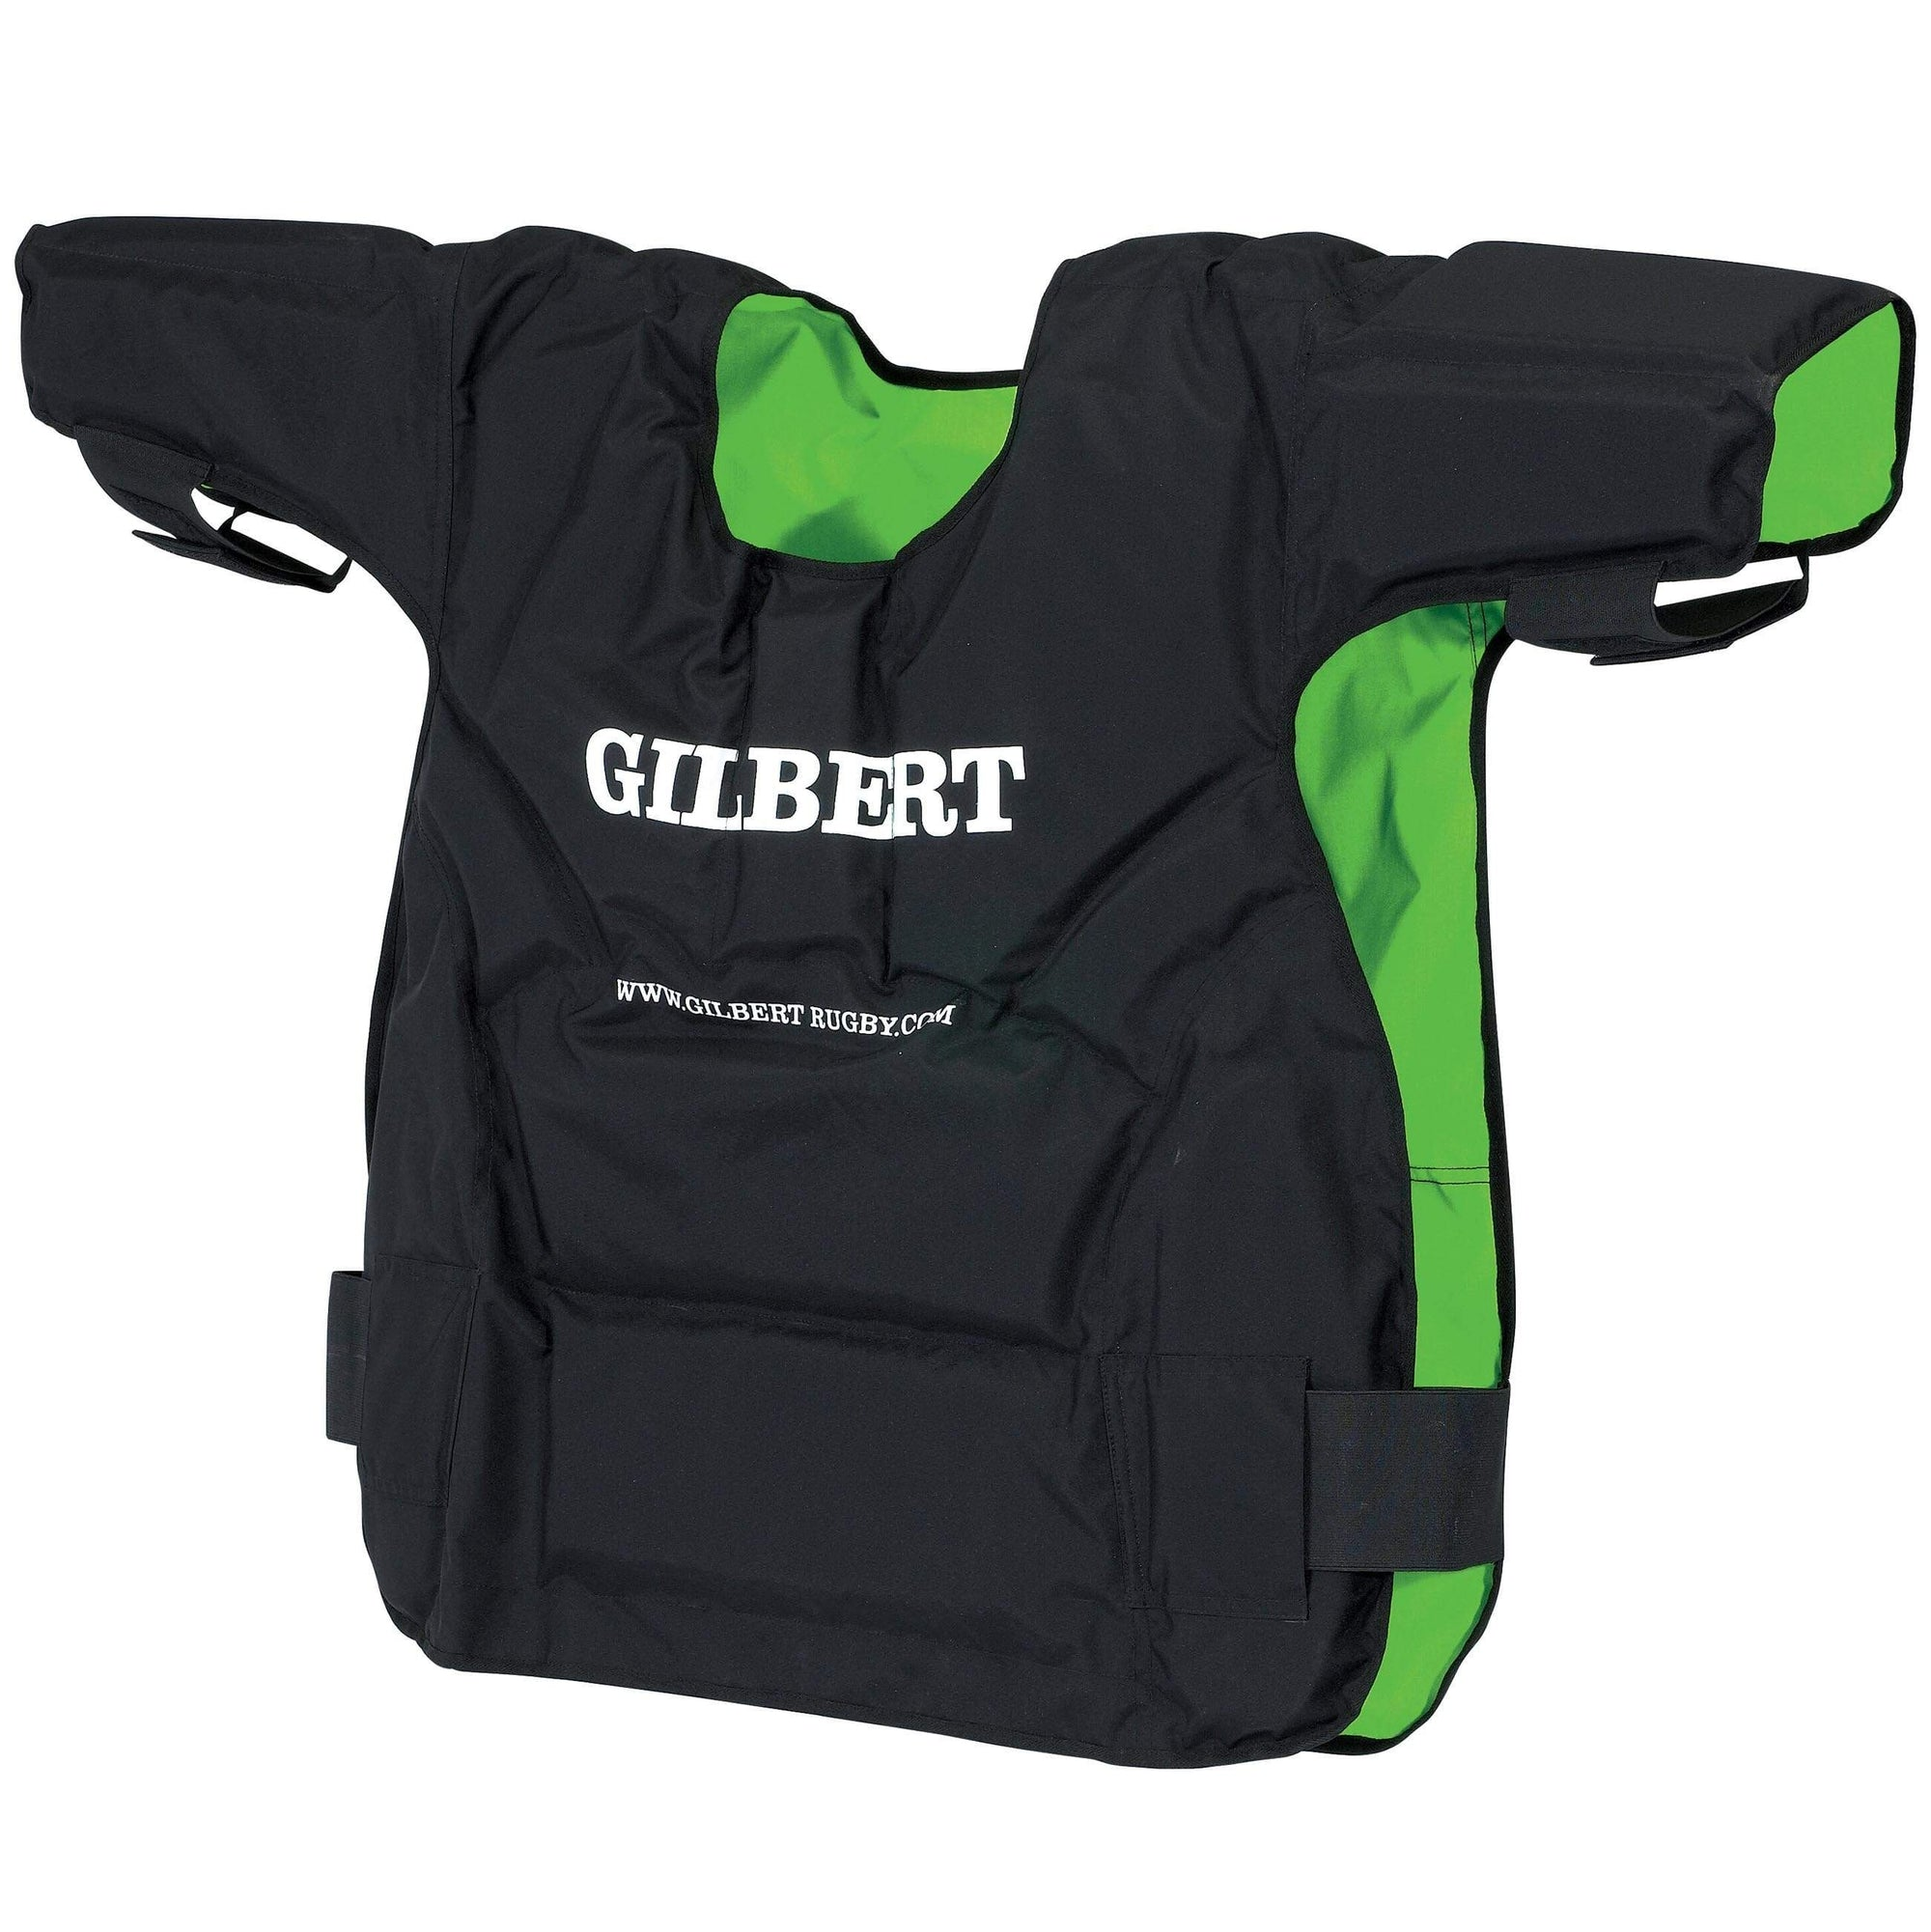 Gilbert Contact Top Black With White Gilbert on Chest and Green Interior